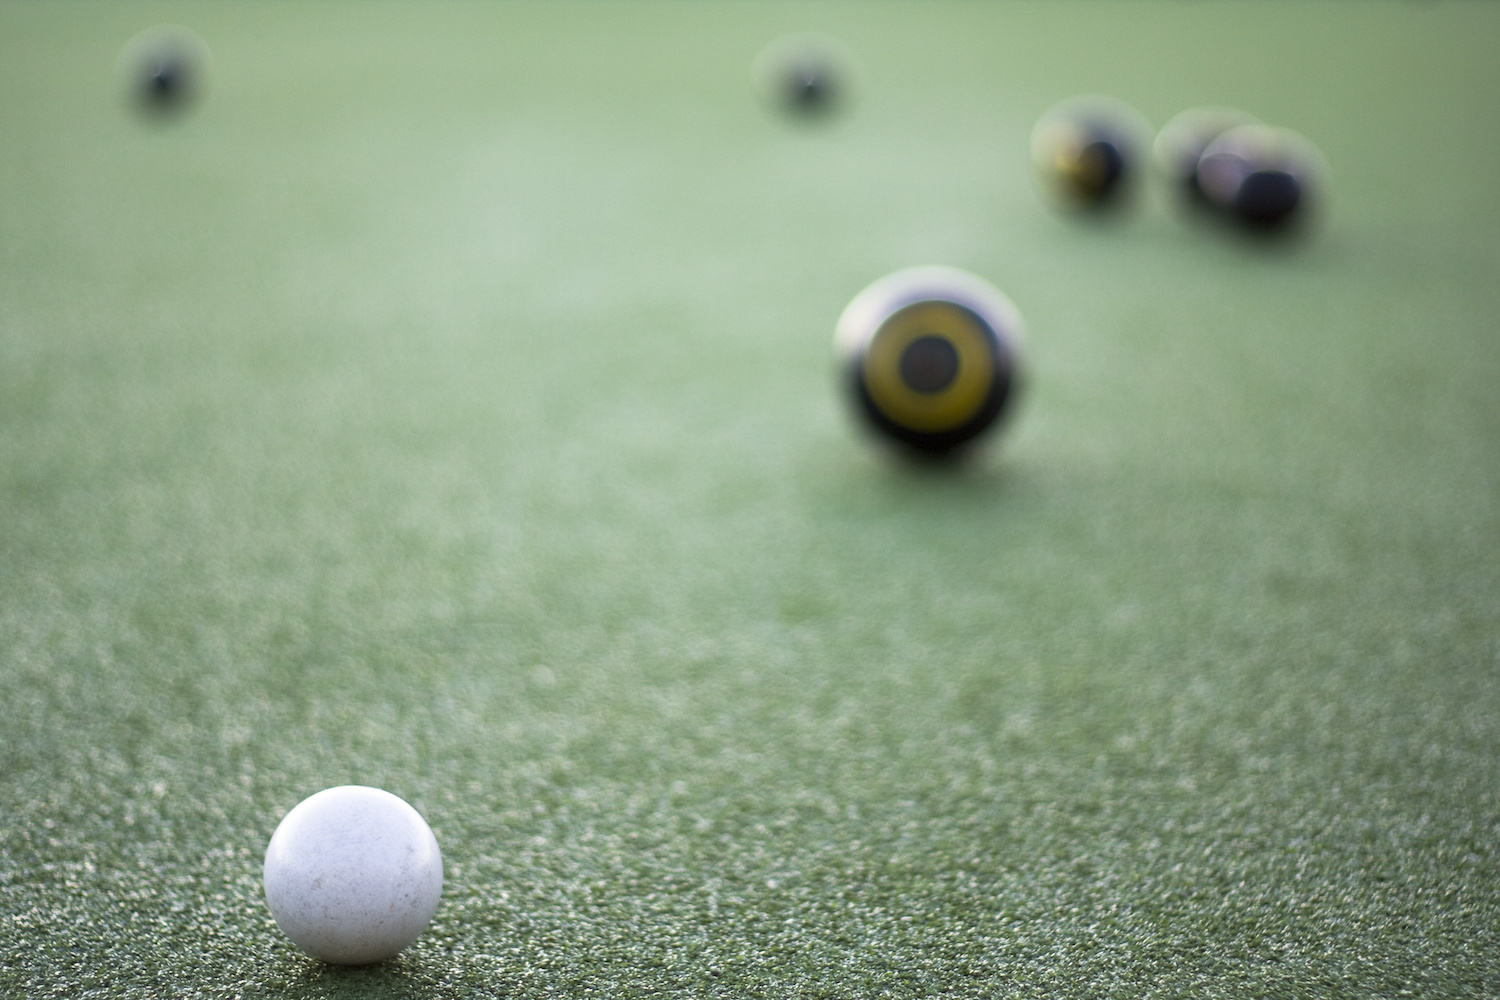 Lawn Bowls Focussed On Jack